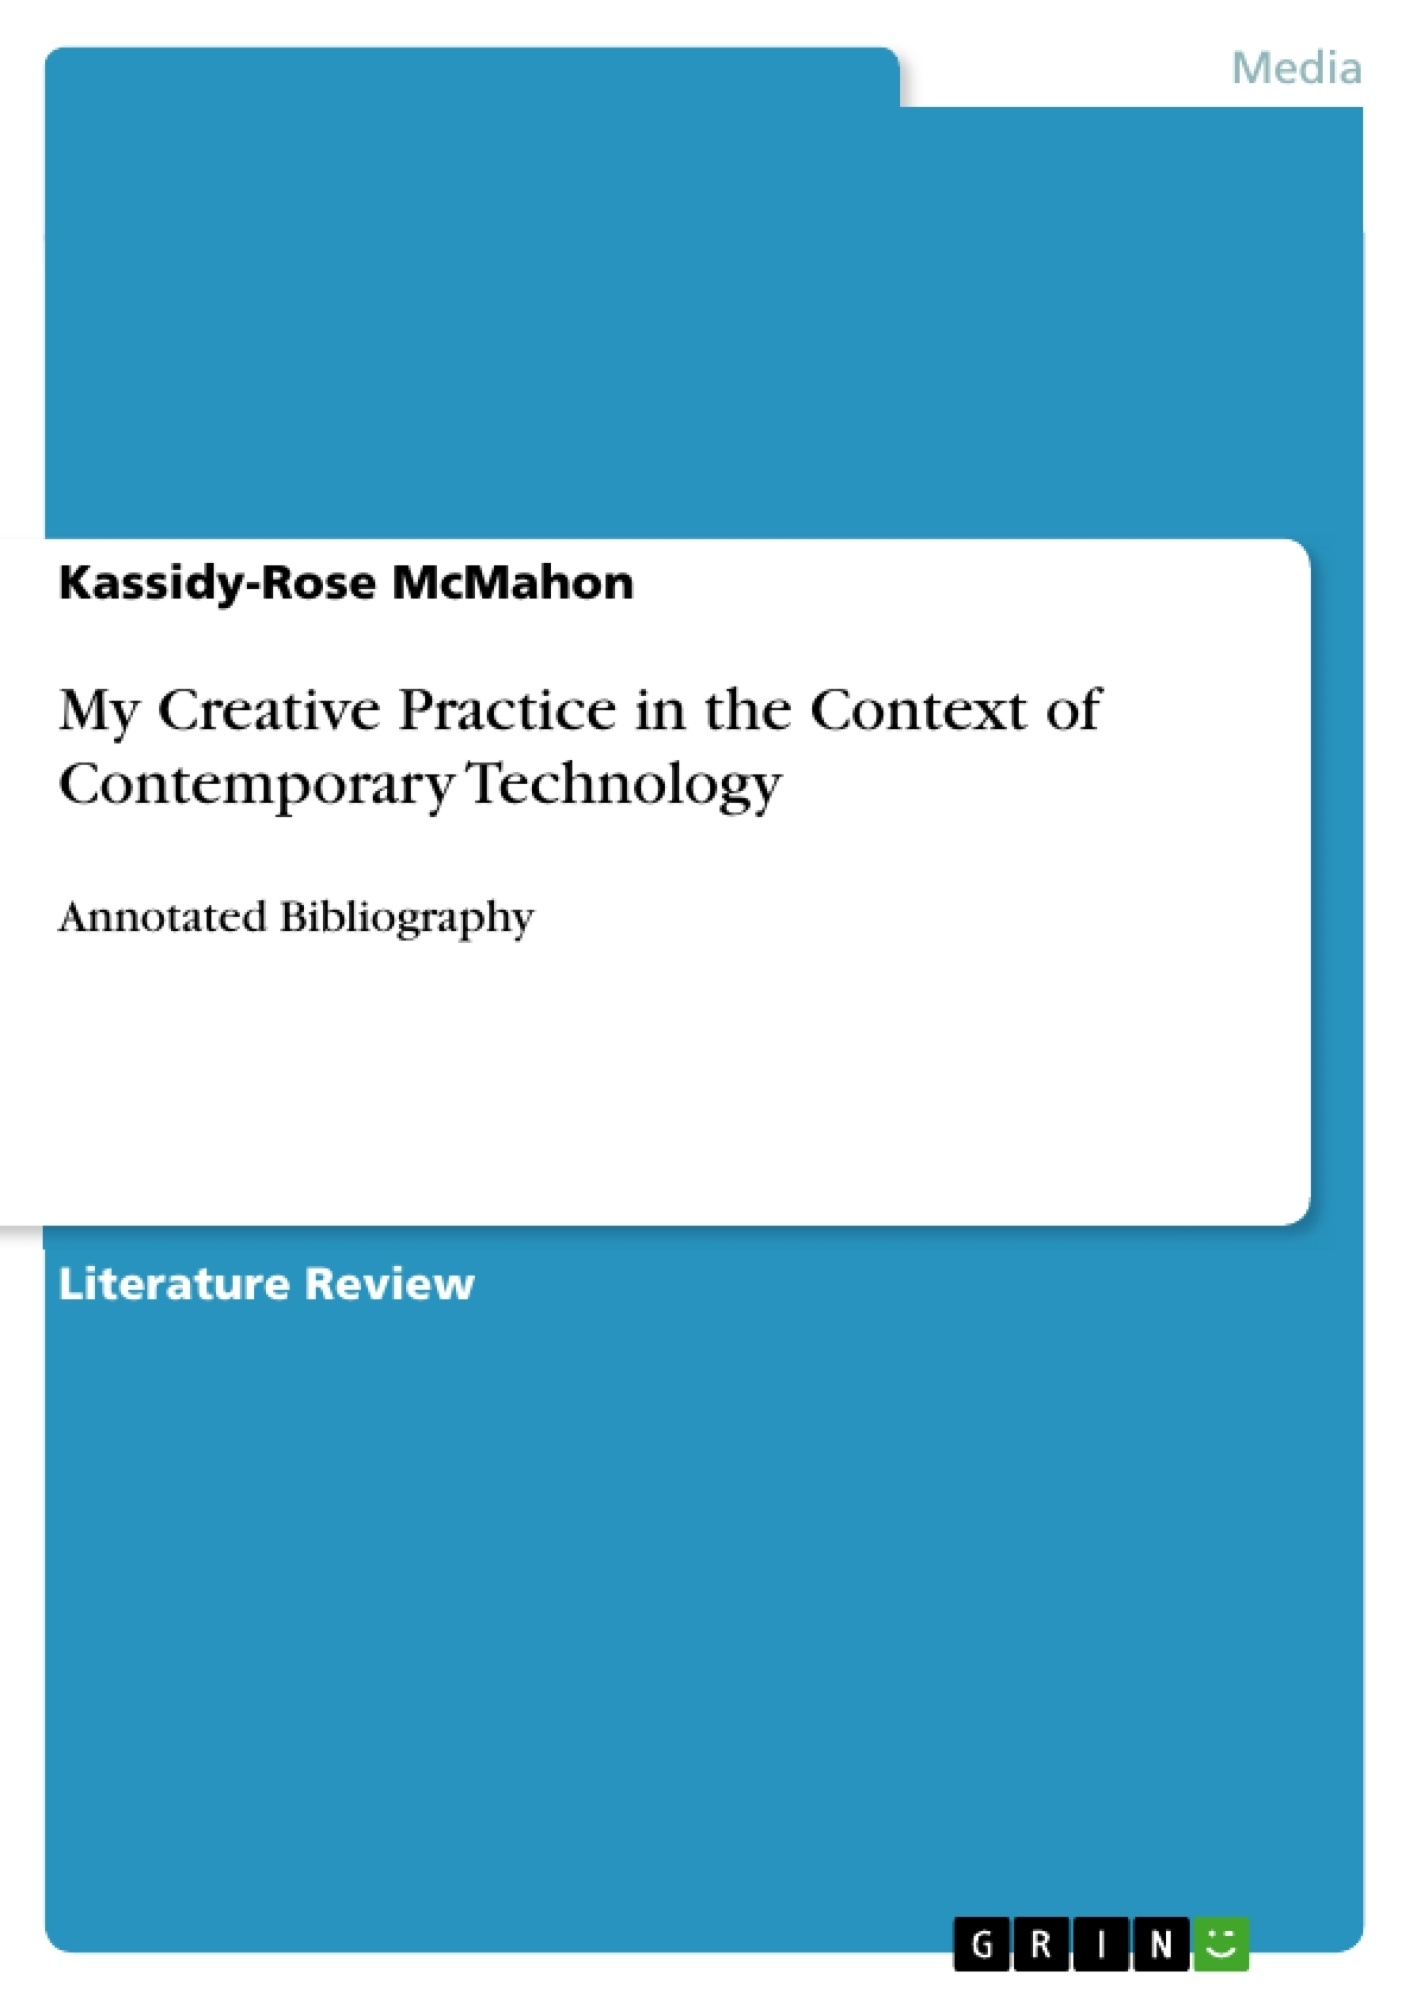 Title: My Creative Practice in the Context of Contemporary Technology